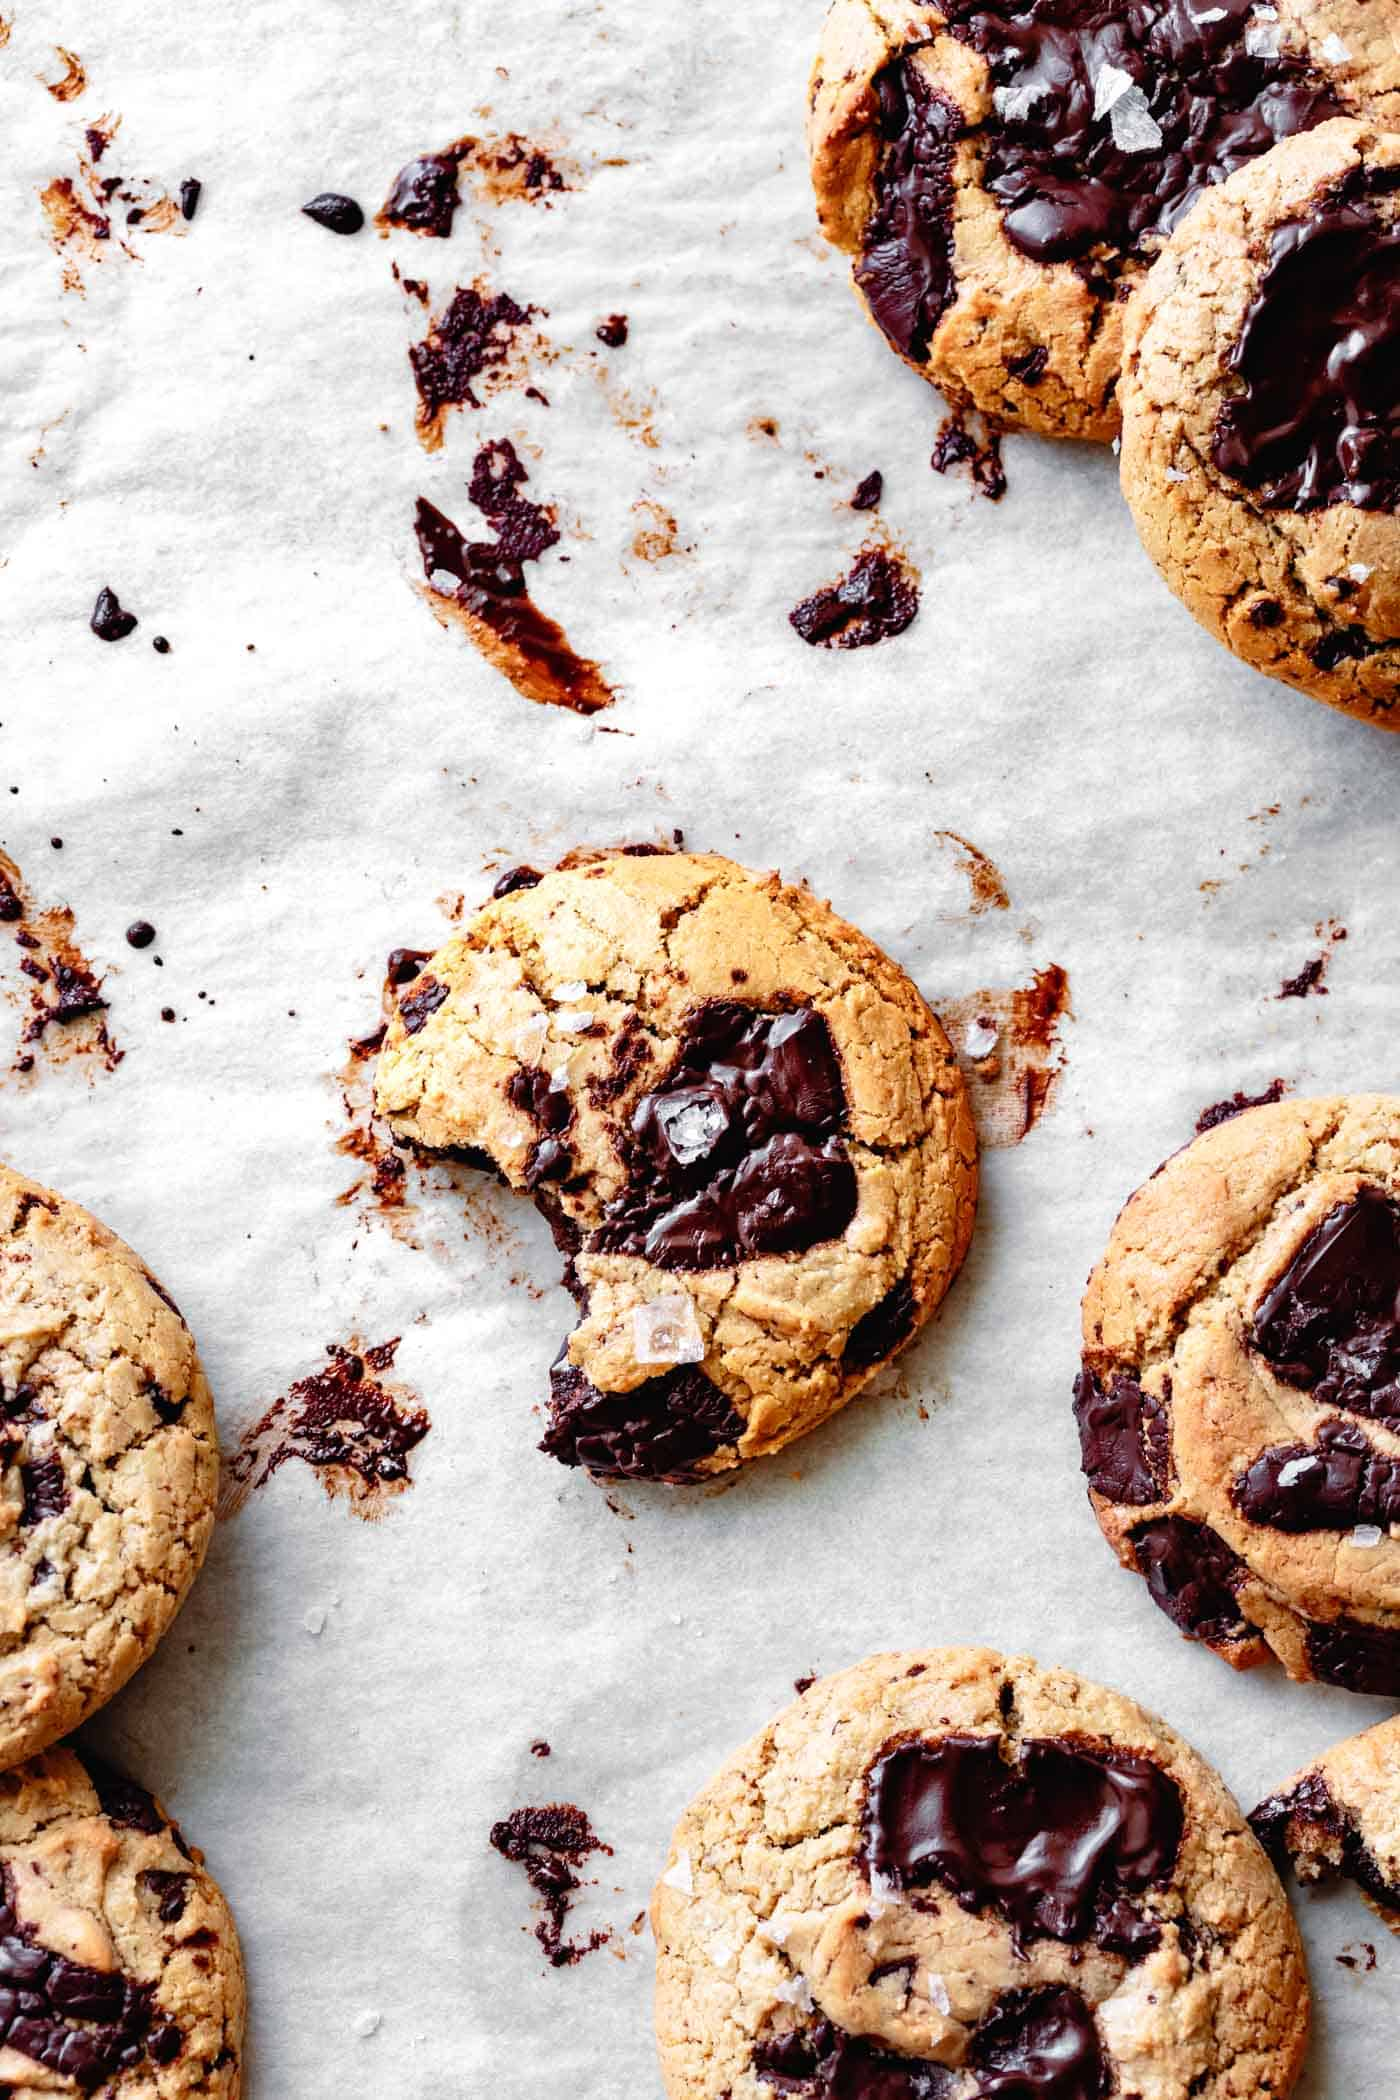 gluten-free dairy-free chocolate chip cookie recipe, freshly baked